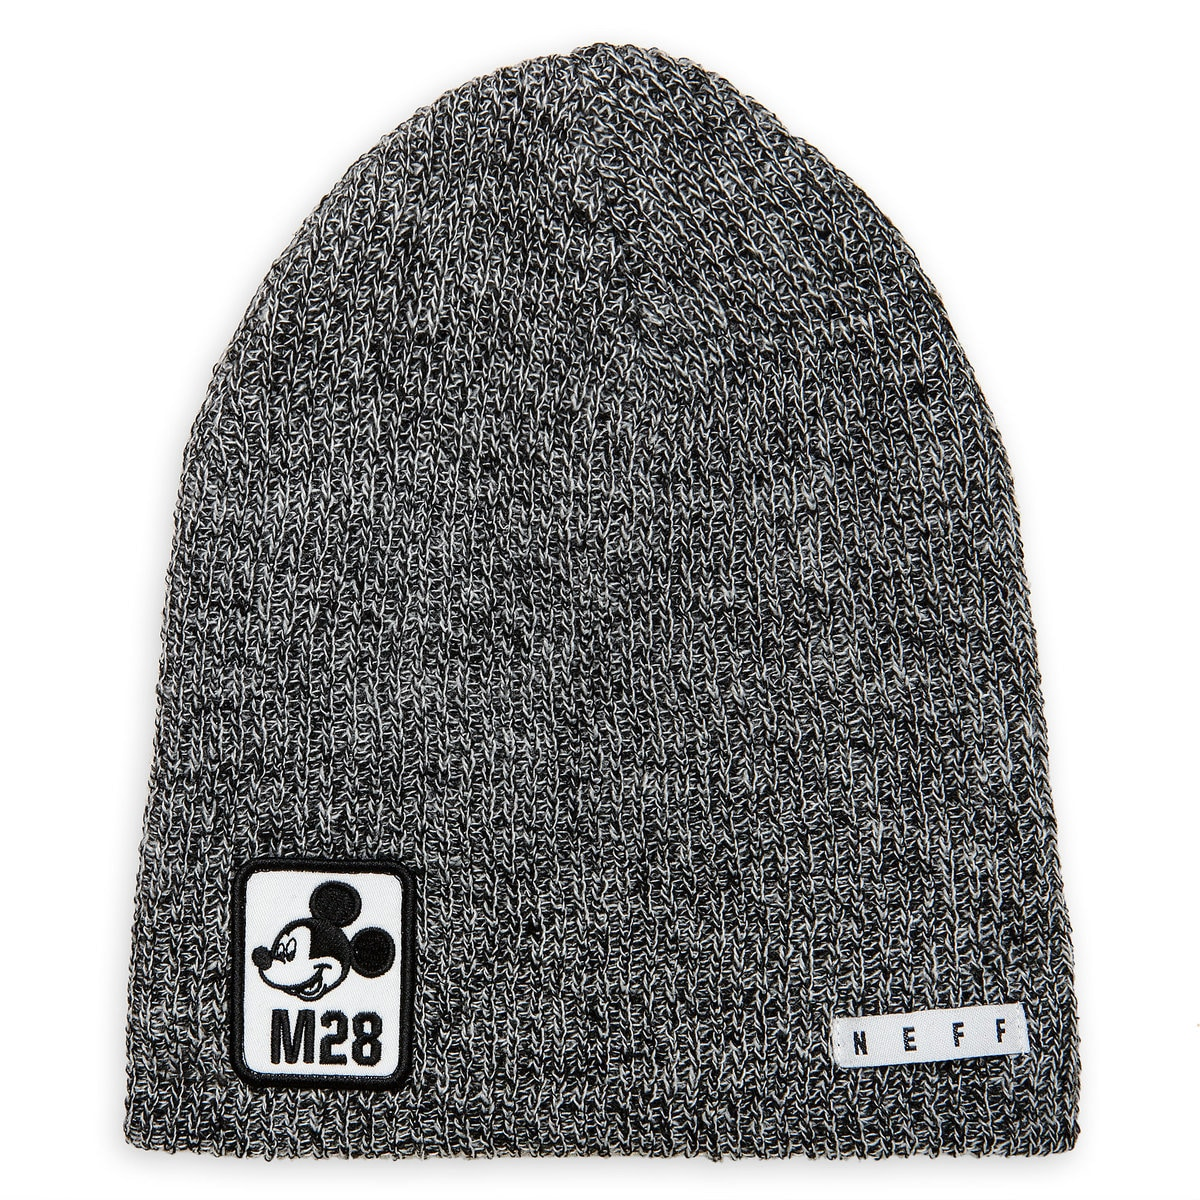 a8f9aae559f Product Image of Mickey Mouse Beanie for Adults by Neff - Gray   1